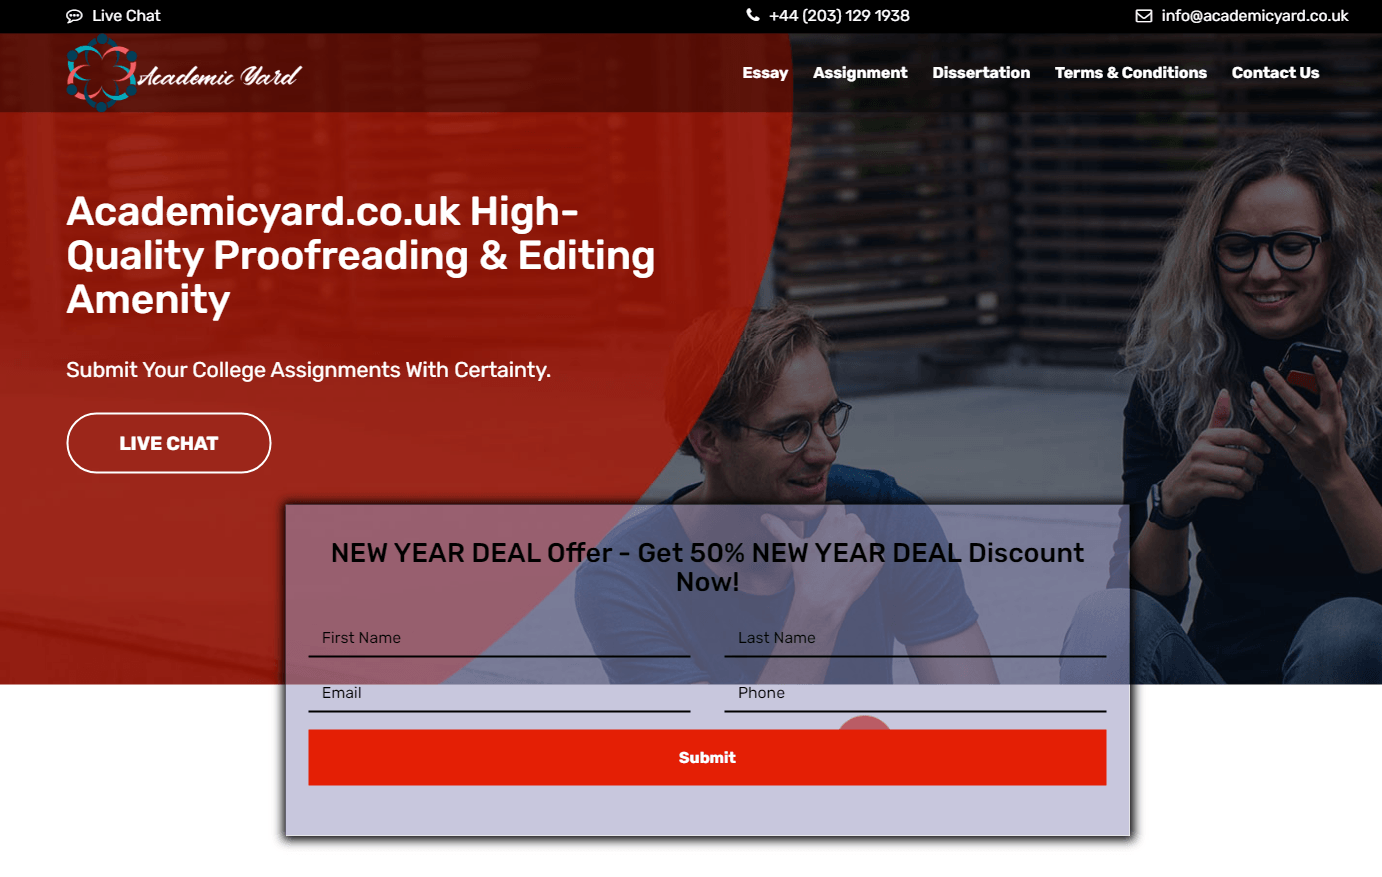 academicyard.co.uk